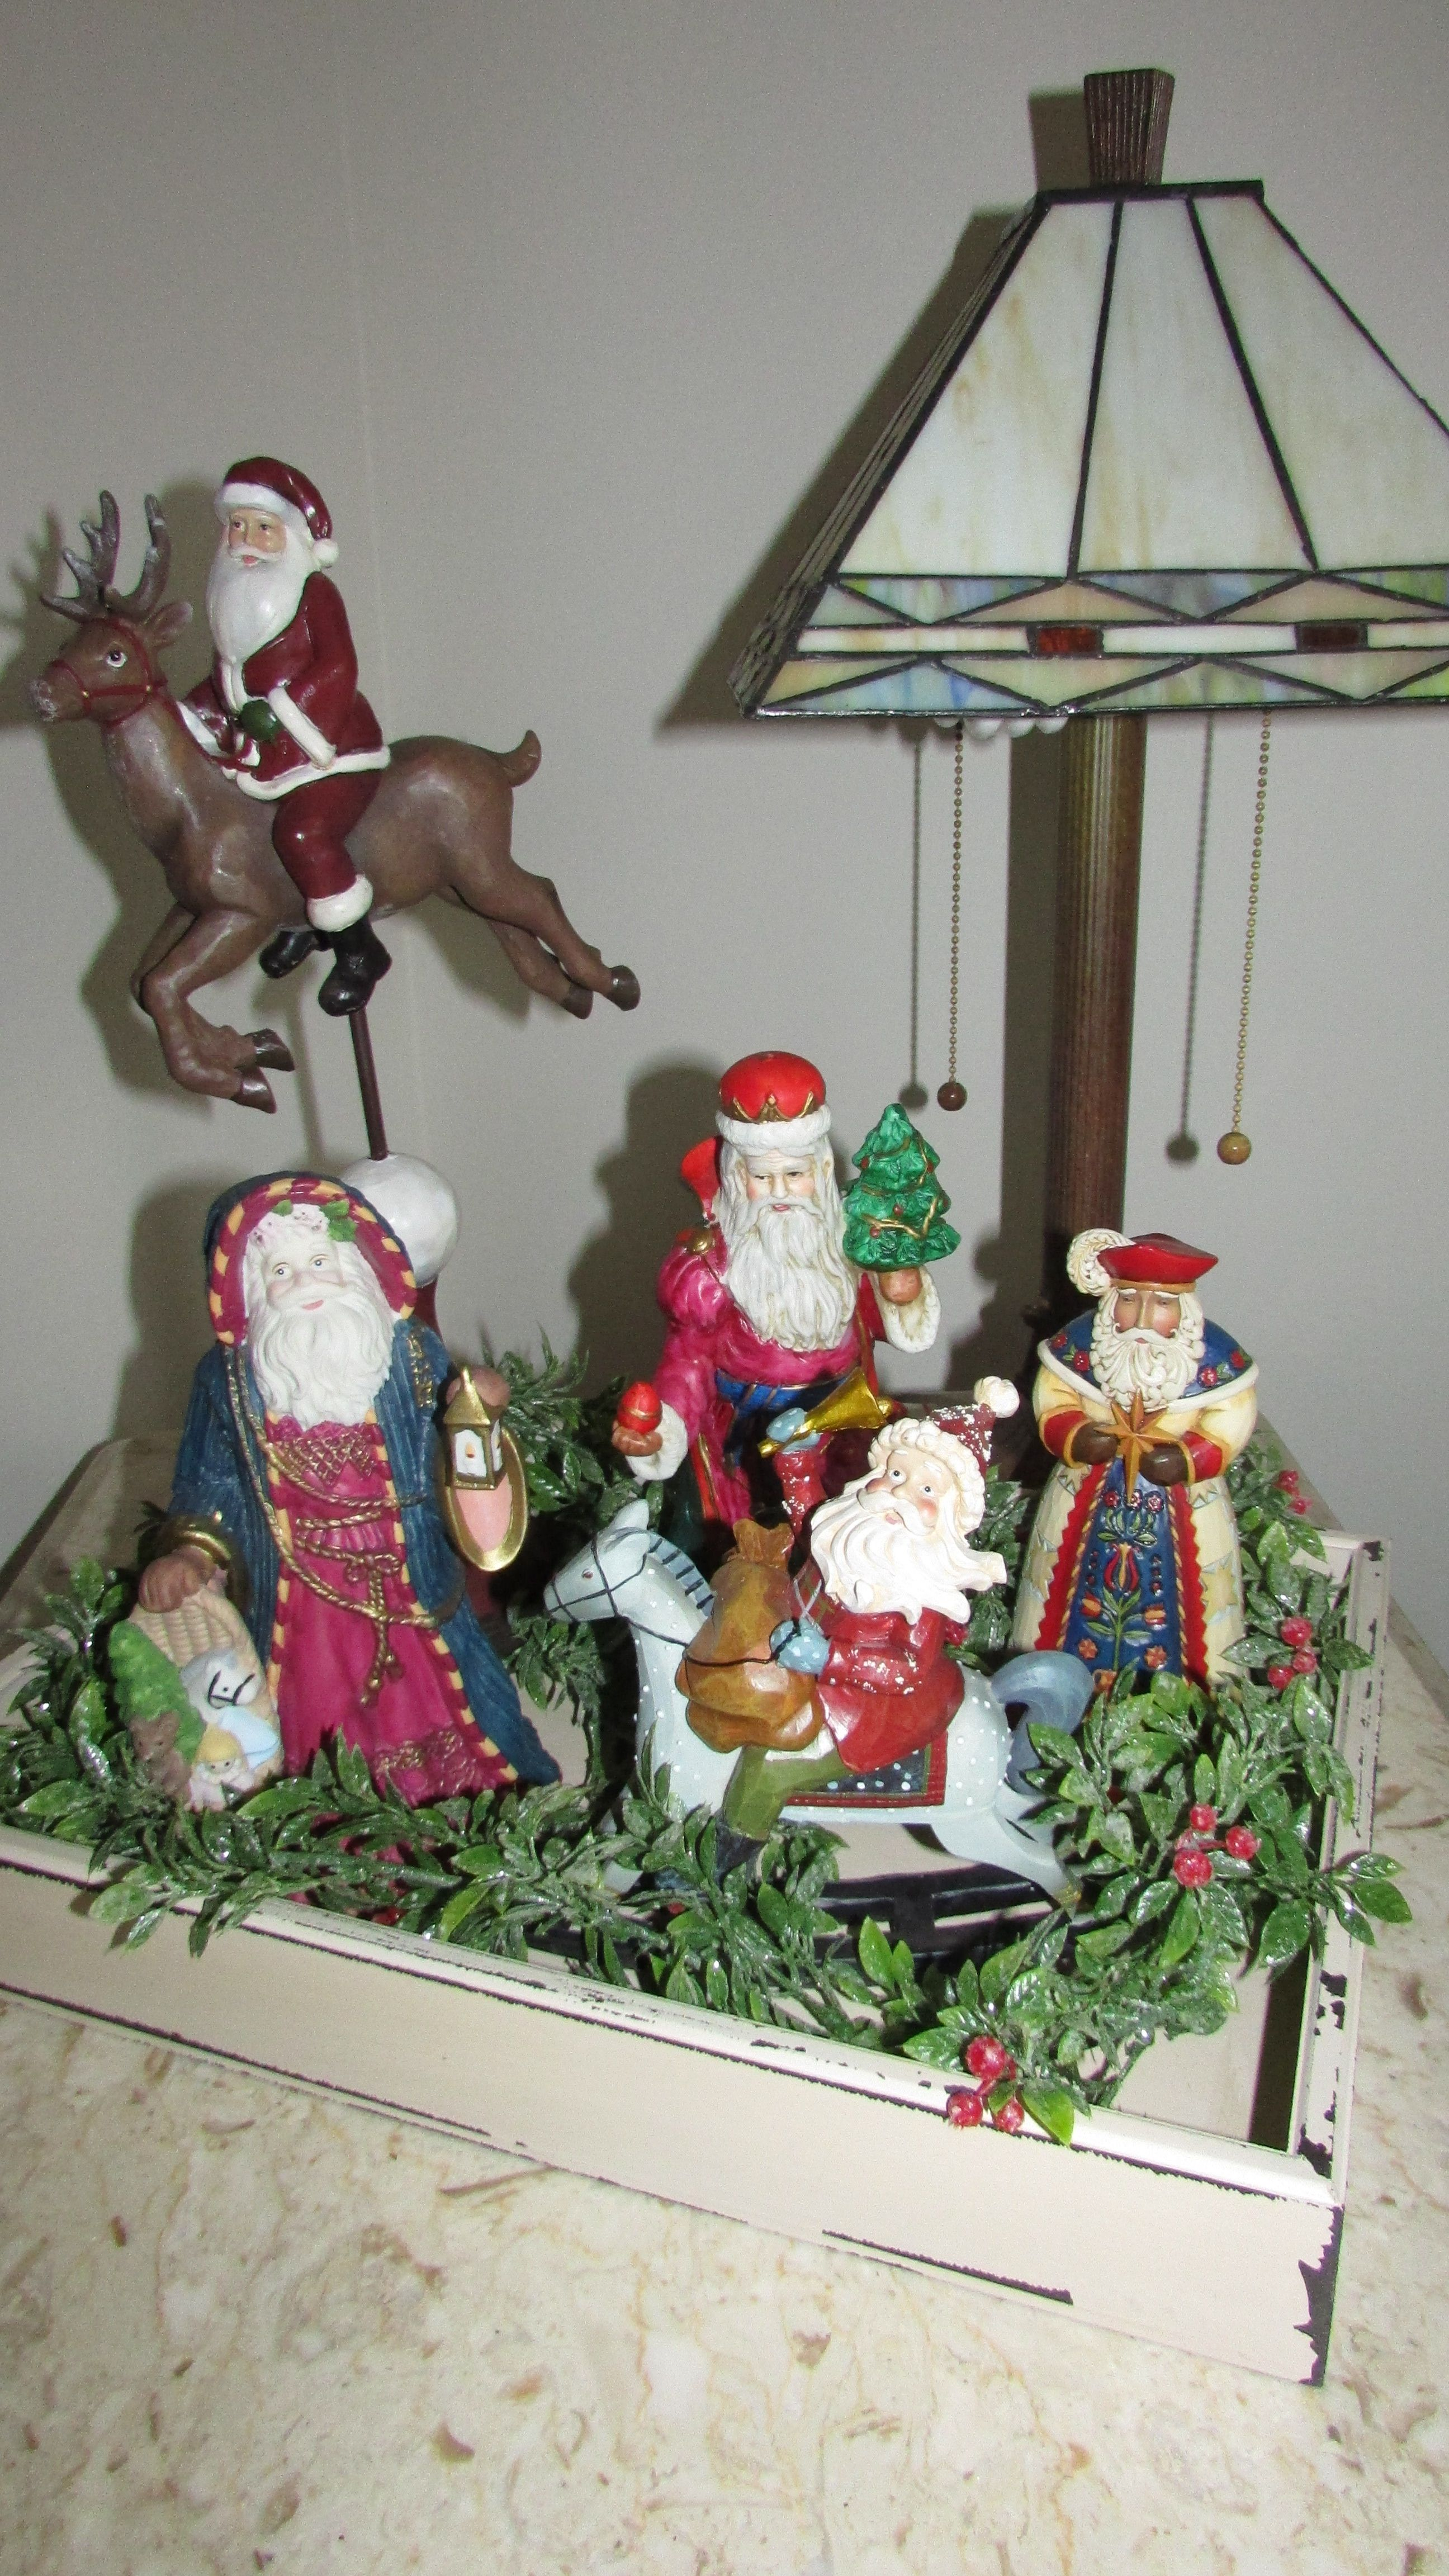 Christmas Tree Crafts Santas Collection In A Tray